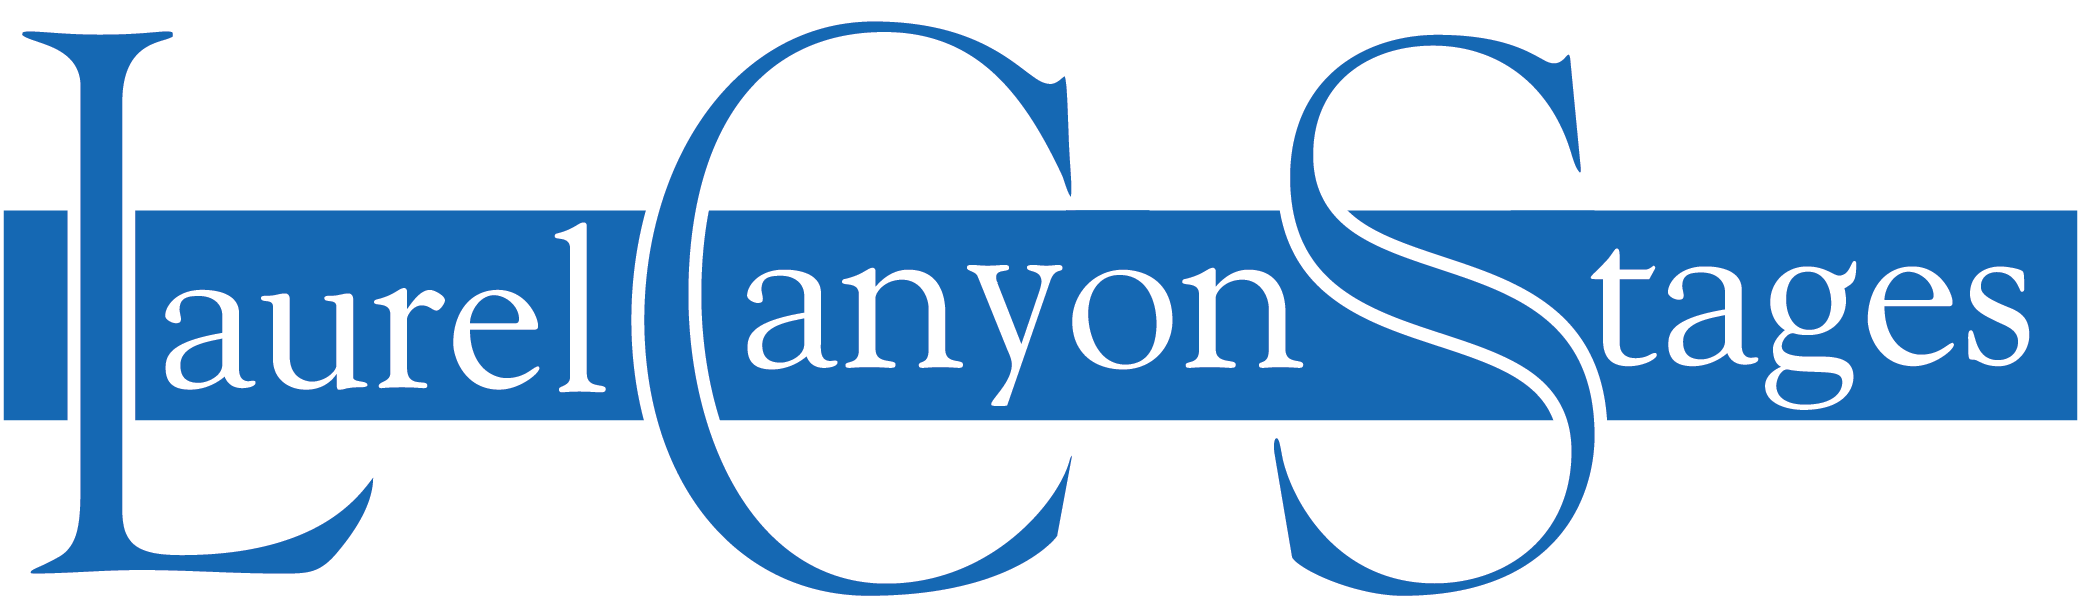 Laurel_Canyon_Stages_Logo.png